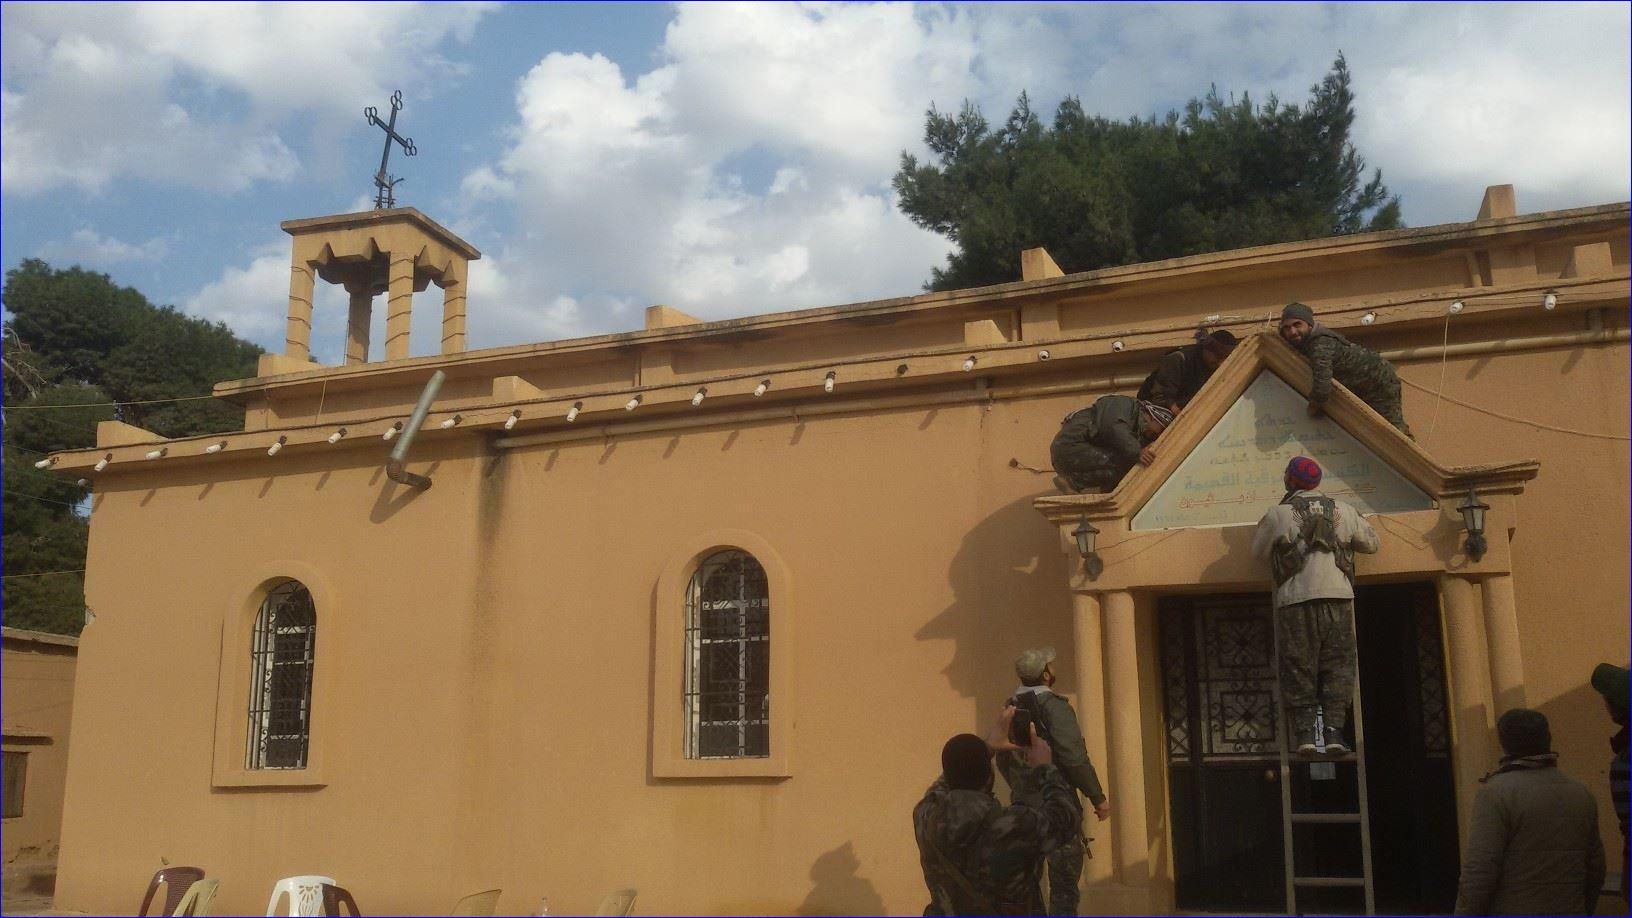 Assyrian fighters mounting the cross on the Church of St. Pithew in Tel Hurmizd (AINA photo).